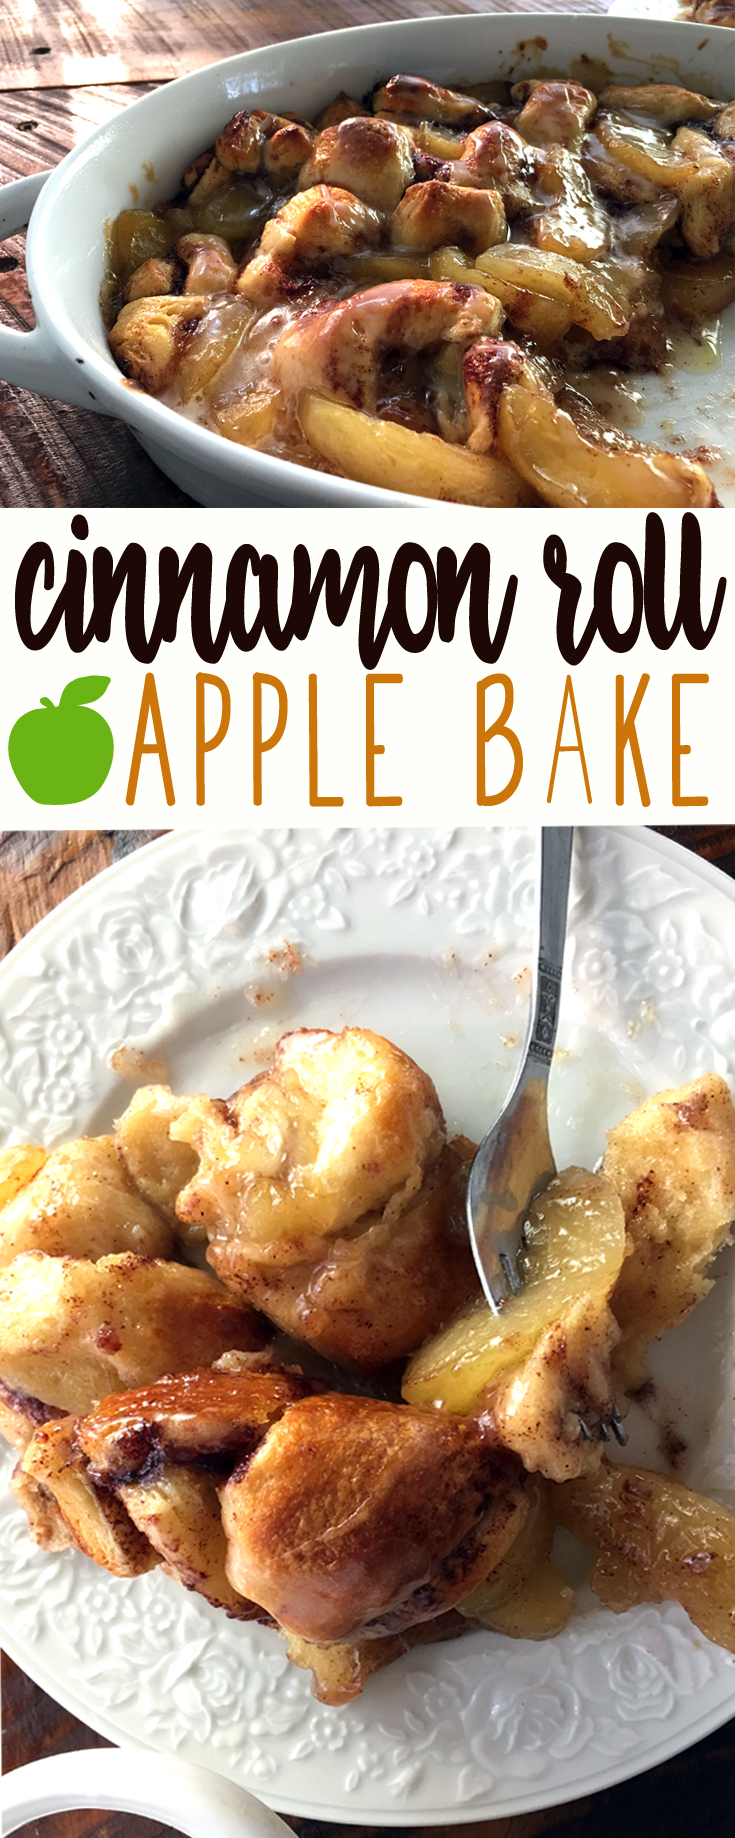 There's easy recipes. Then there's EASY recipes. You are going to love this two-ingredient recipe for Cinnamon Roll Apple Bake. Yes, you heard me correctly, TWO INGREDIENTS. #cinnamonroll #dessertrecipe